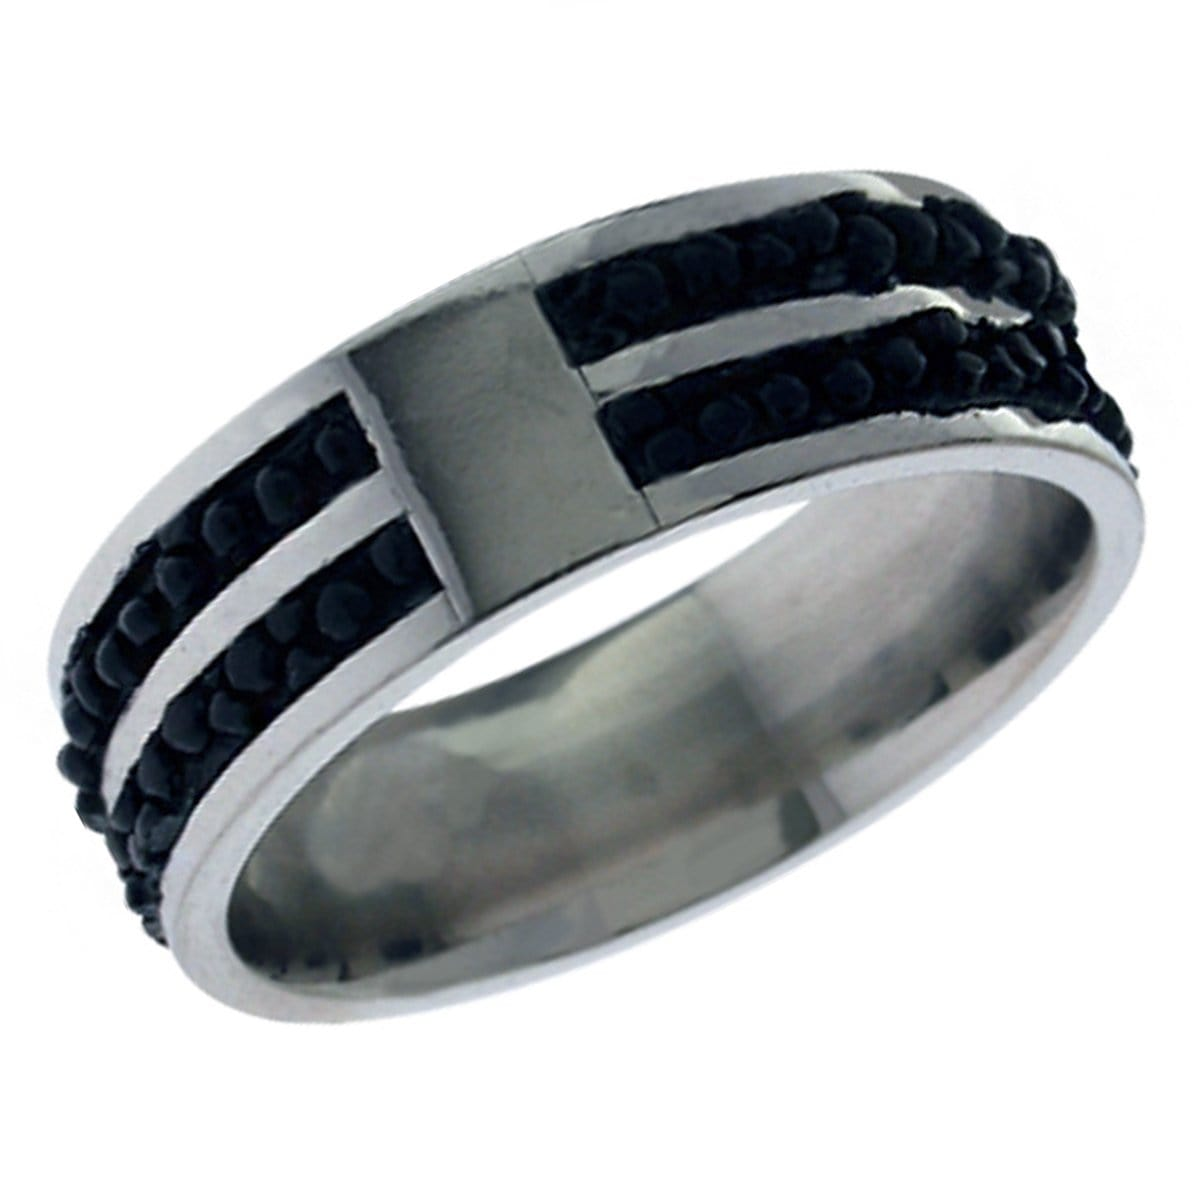 Silver Stainless Steel with Small Black Bead Ring